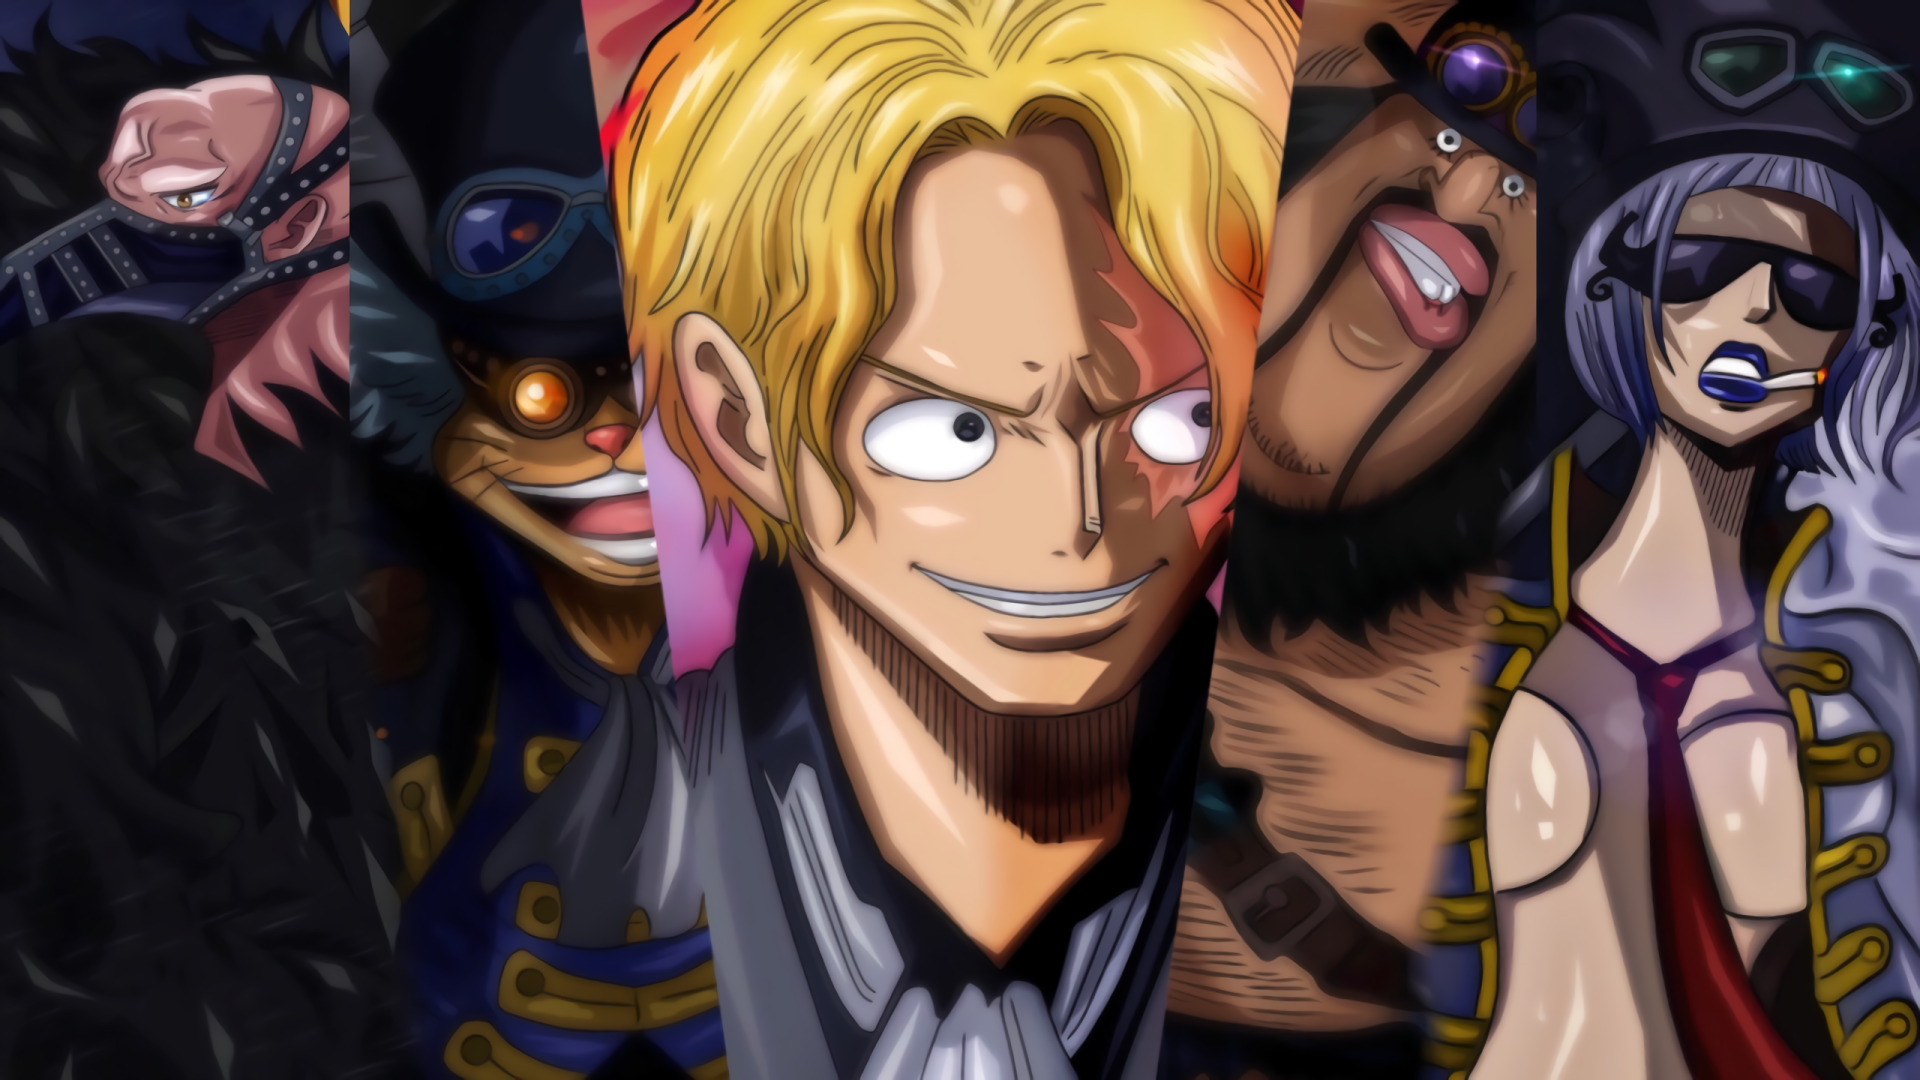 One Piece HD Wallpaper | Background Image | 2560x1440 | ID:931069 - Wallpaper Abyss